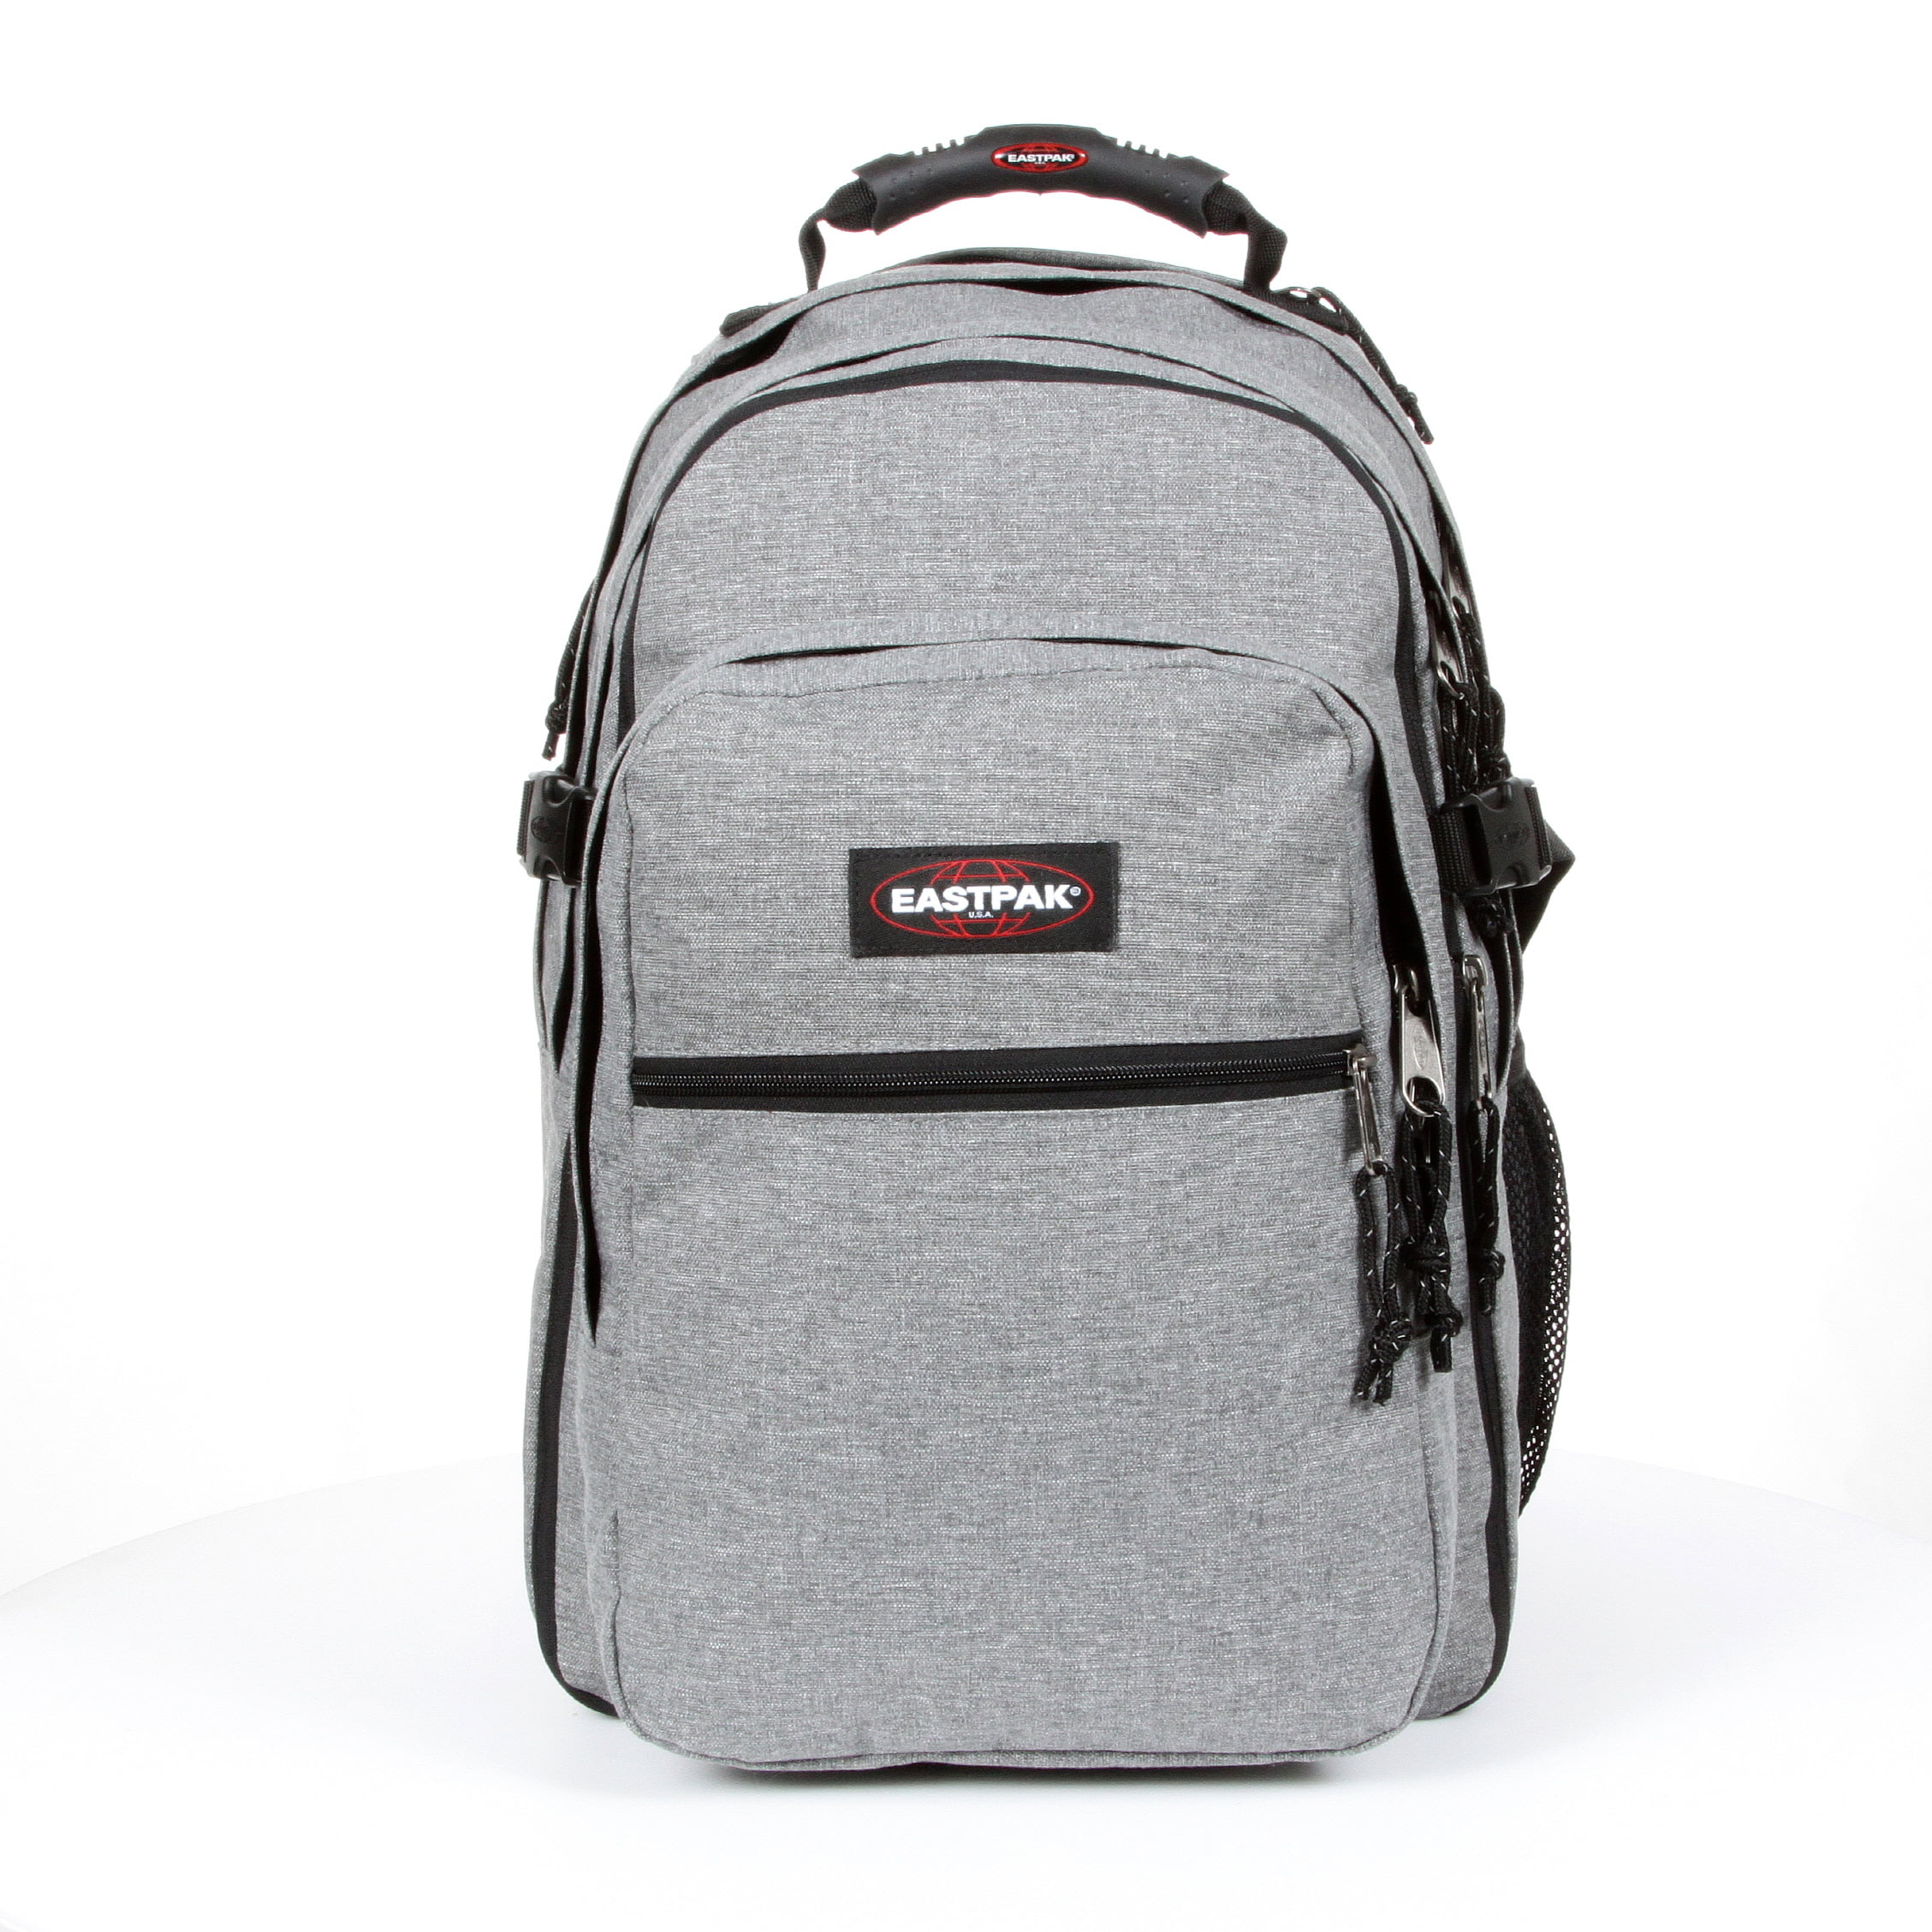 [EASTPAK] AUTHENTIC 백팩 튜터 EIABA10 363